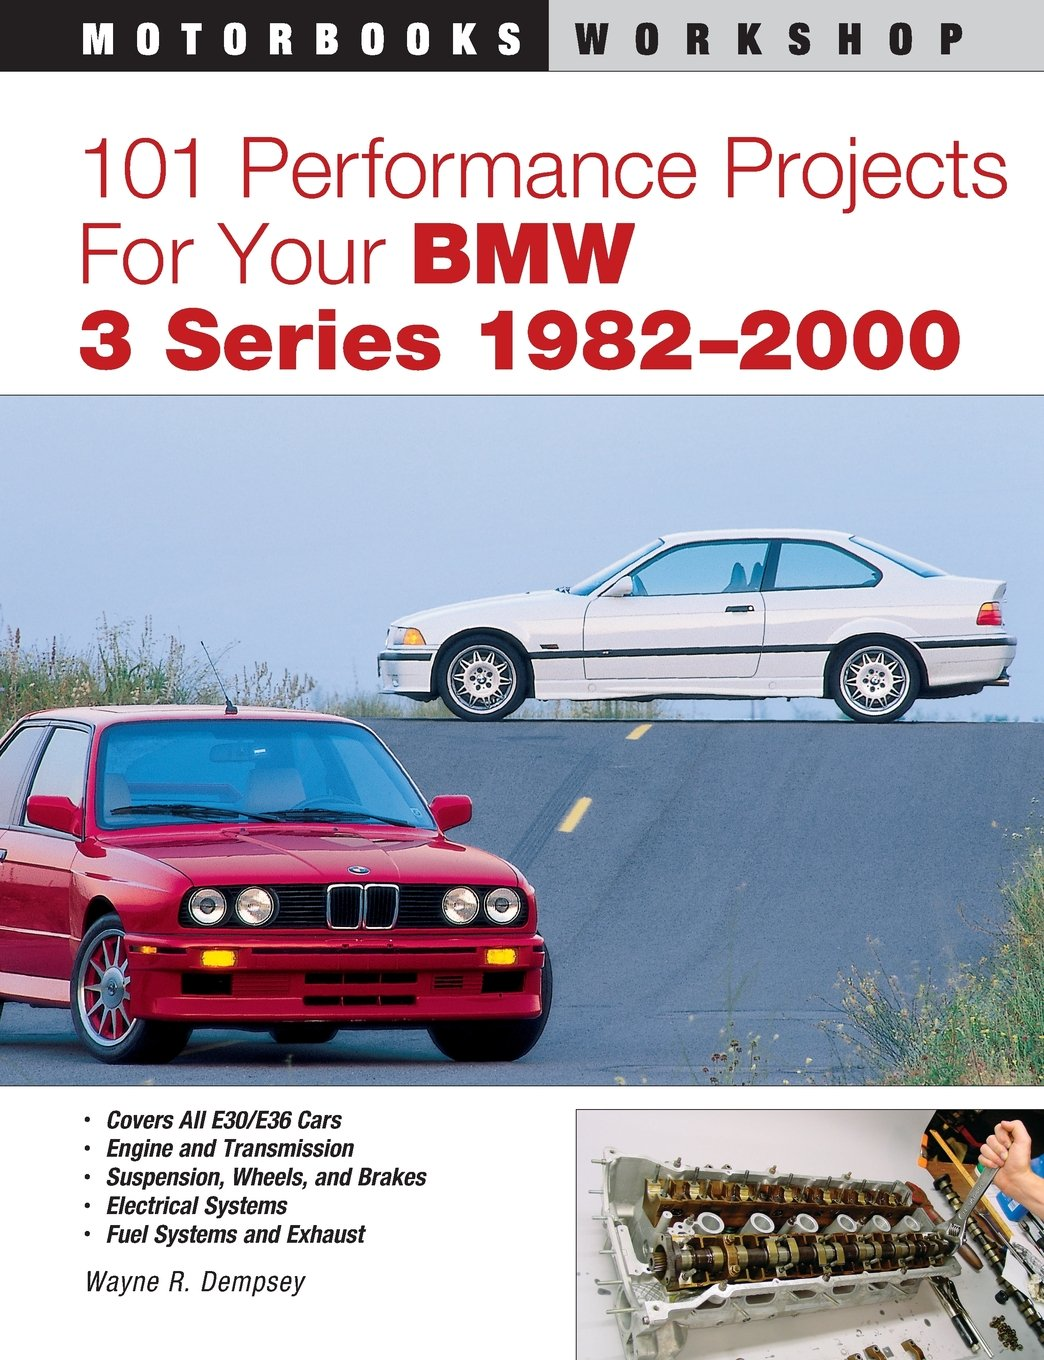 101 Performance Projects for Your BMW 3 Series 1982-2000 (Motorbooks Workshop)